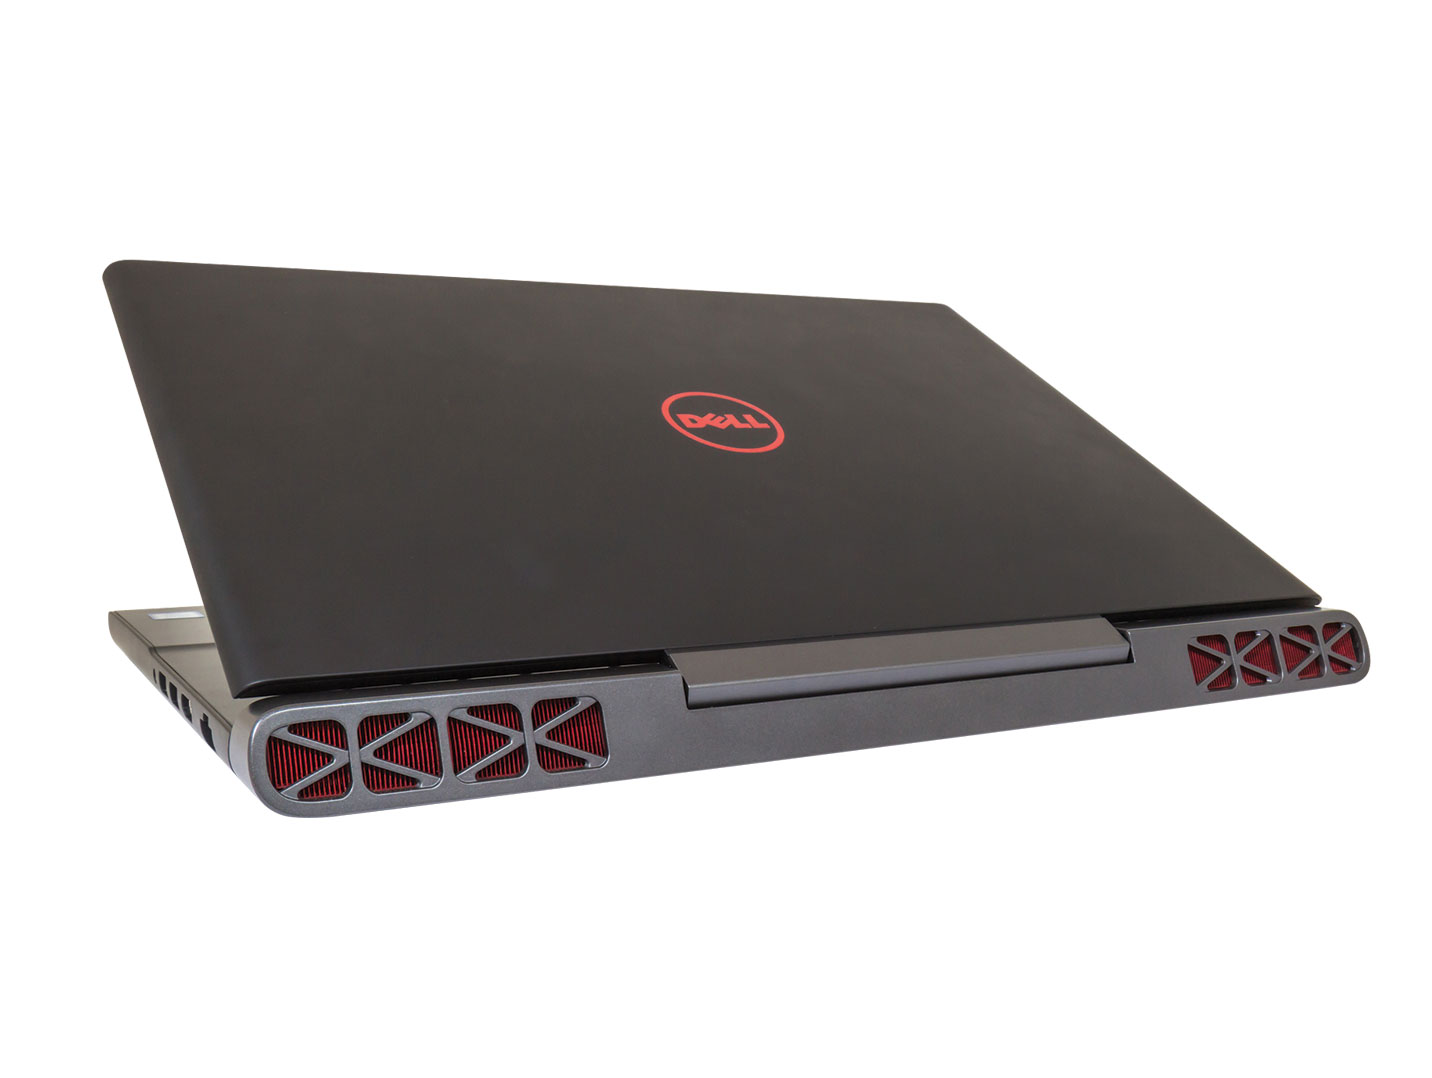 Dell Inspiron 15 7566 Gaming